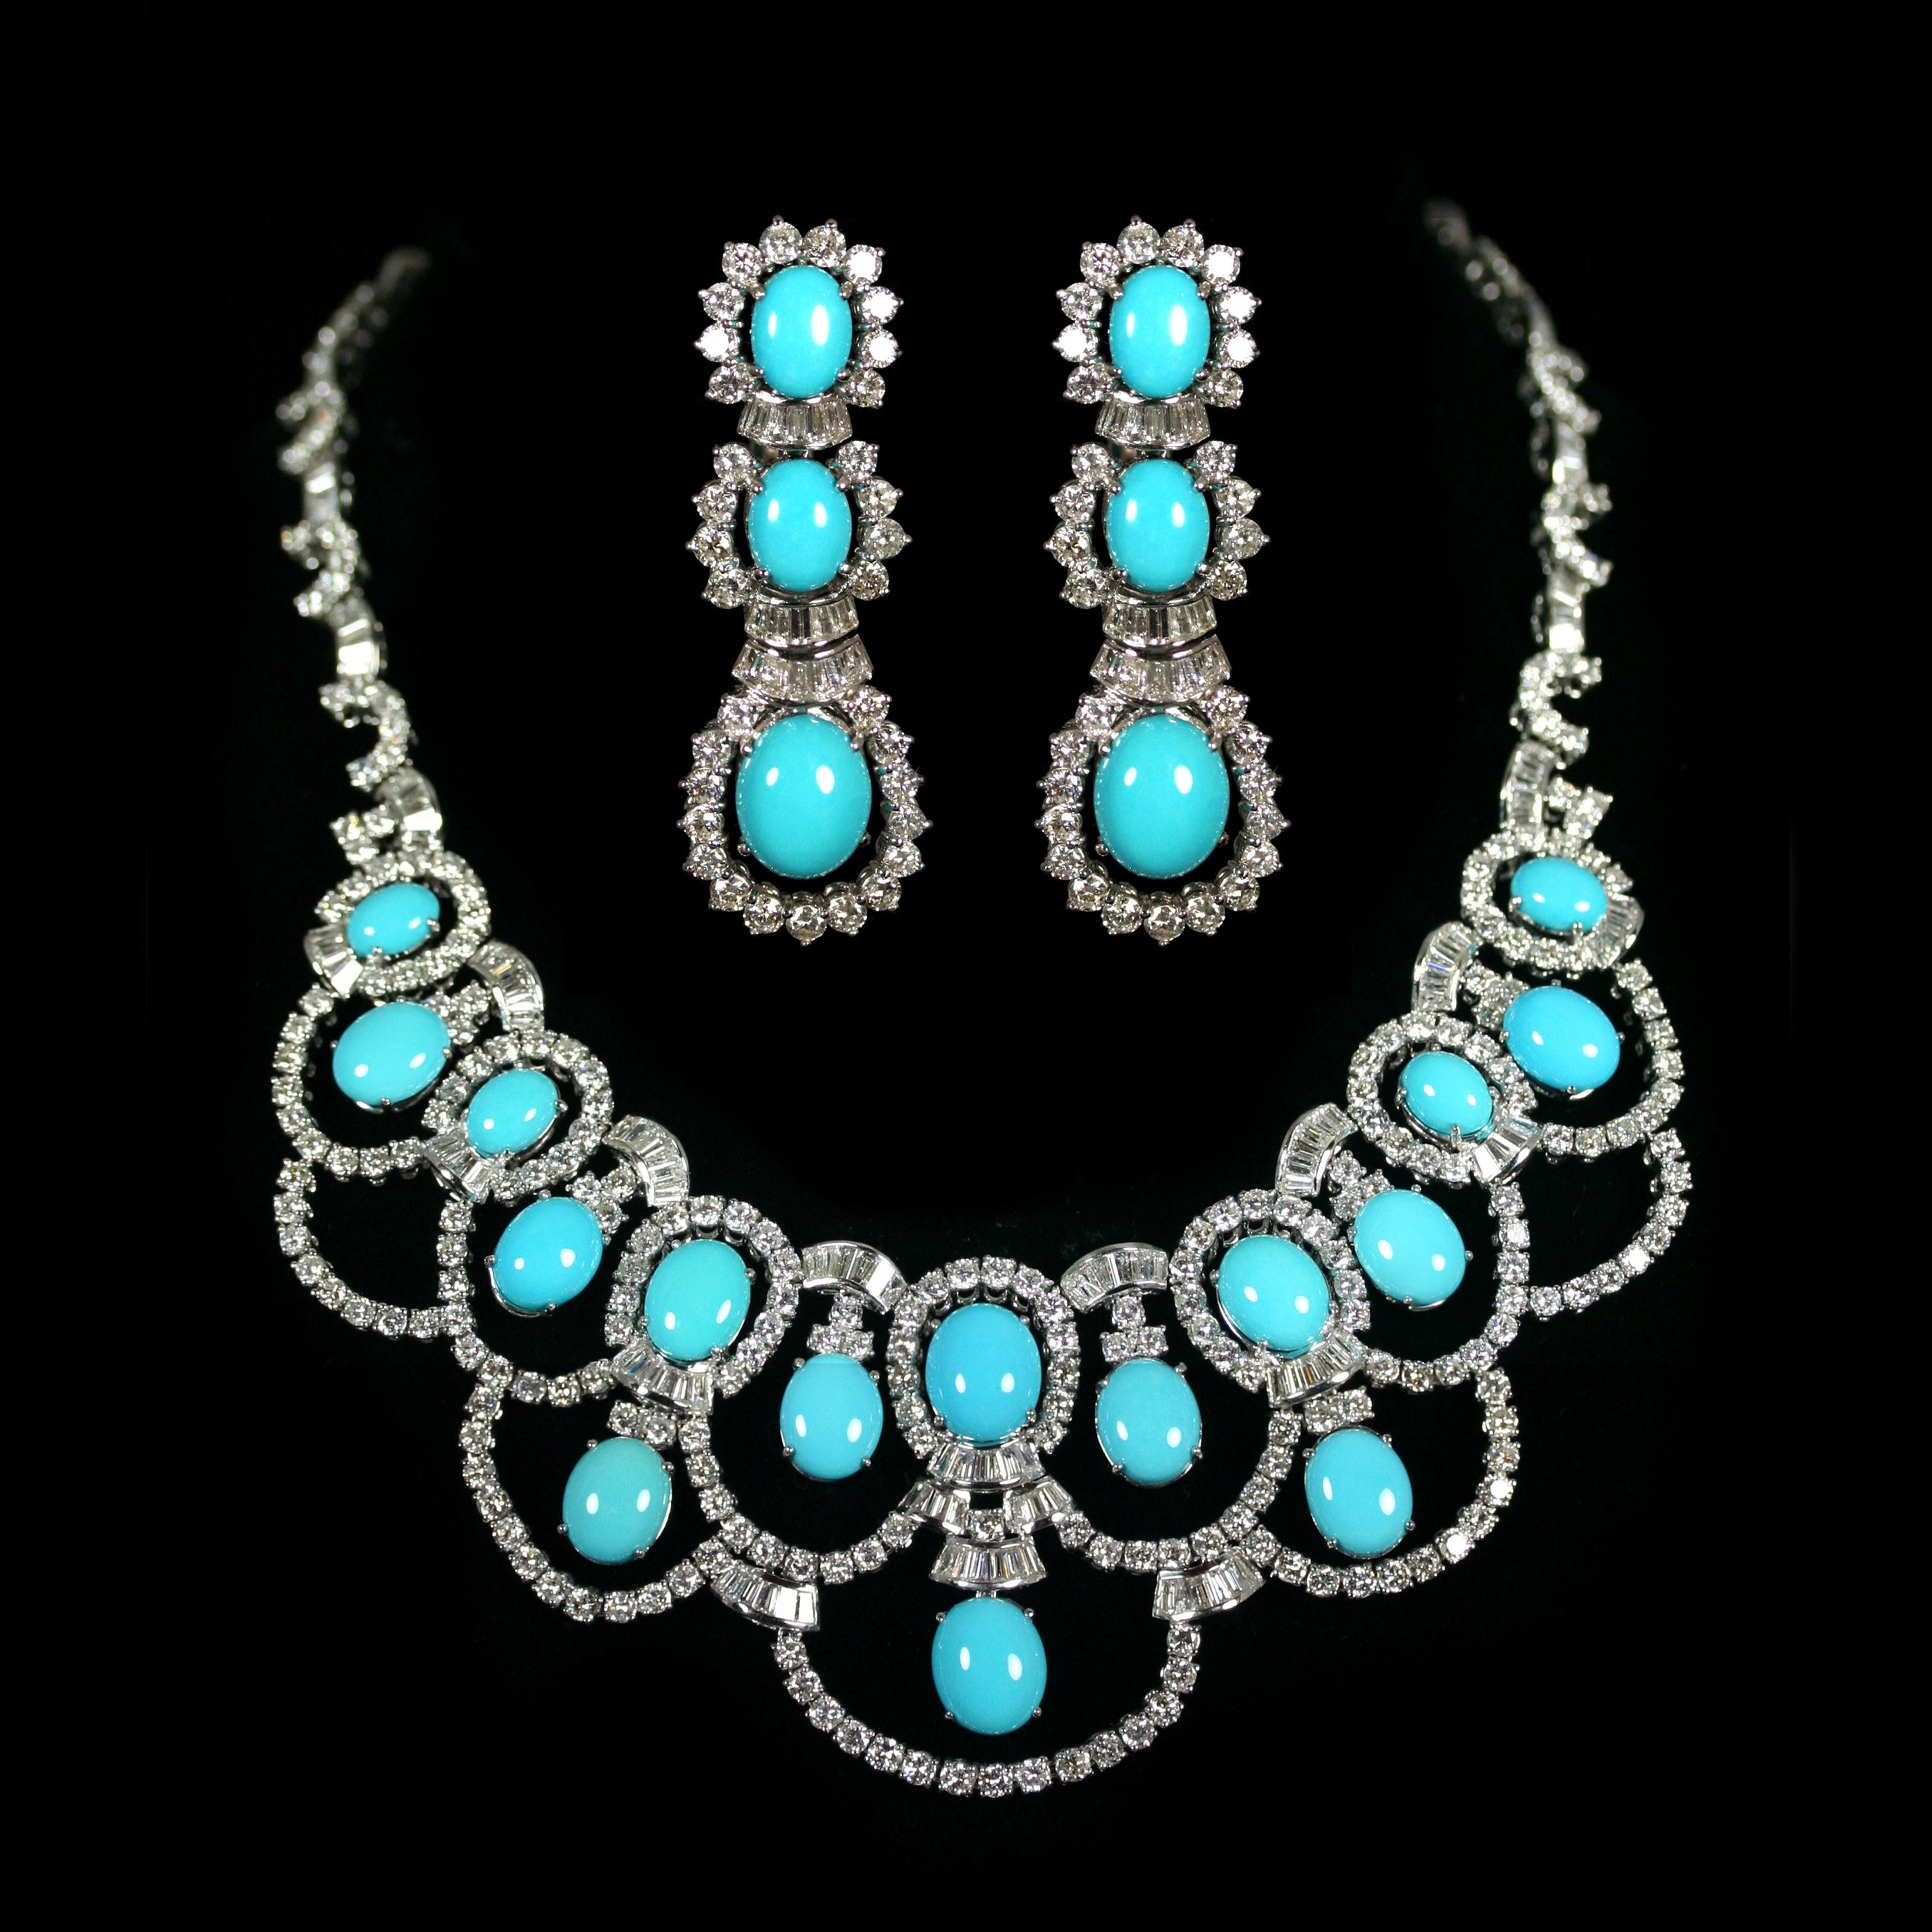 Turquoise Diamond Earrings And Necklace Set Accompanied By A